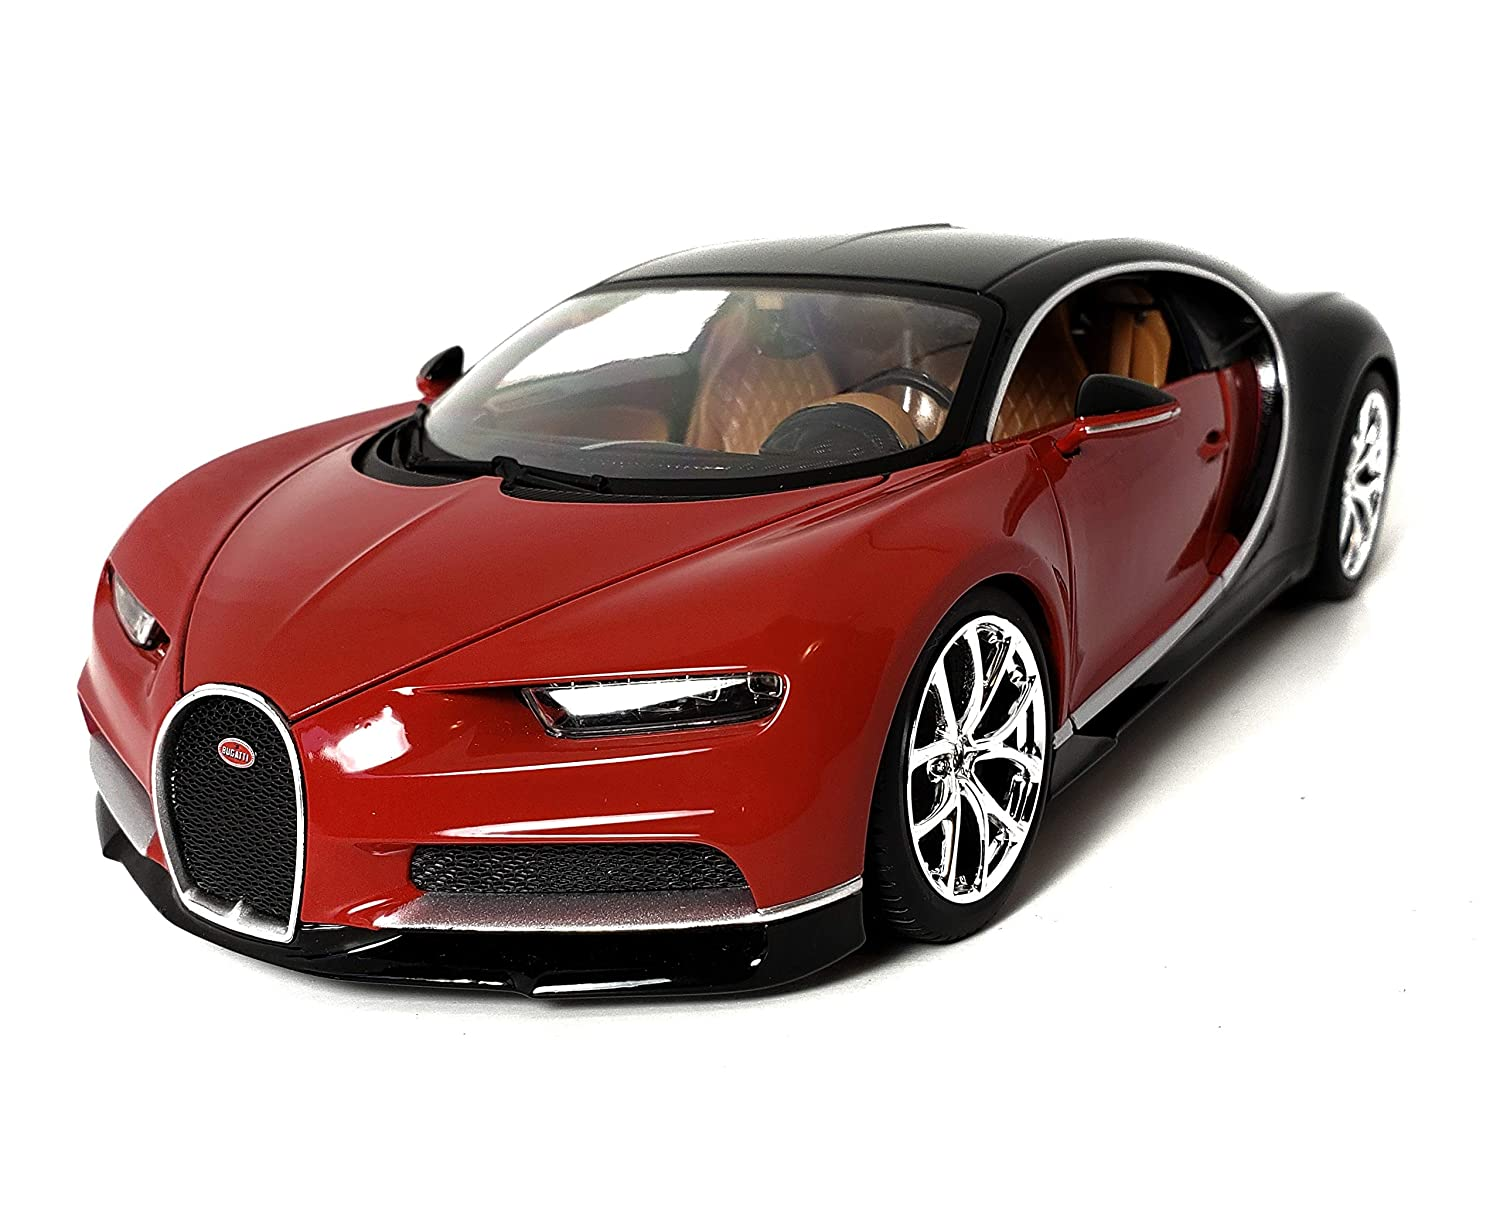 Maisto Special Edition 1:18 Bugatti Chiron Diecast Vehicle (Red) china